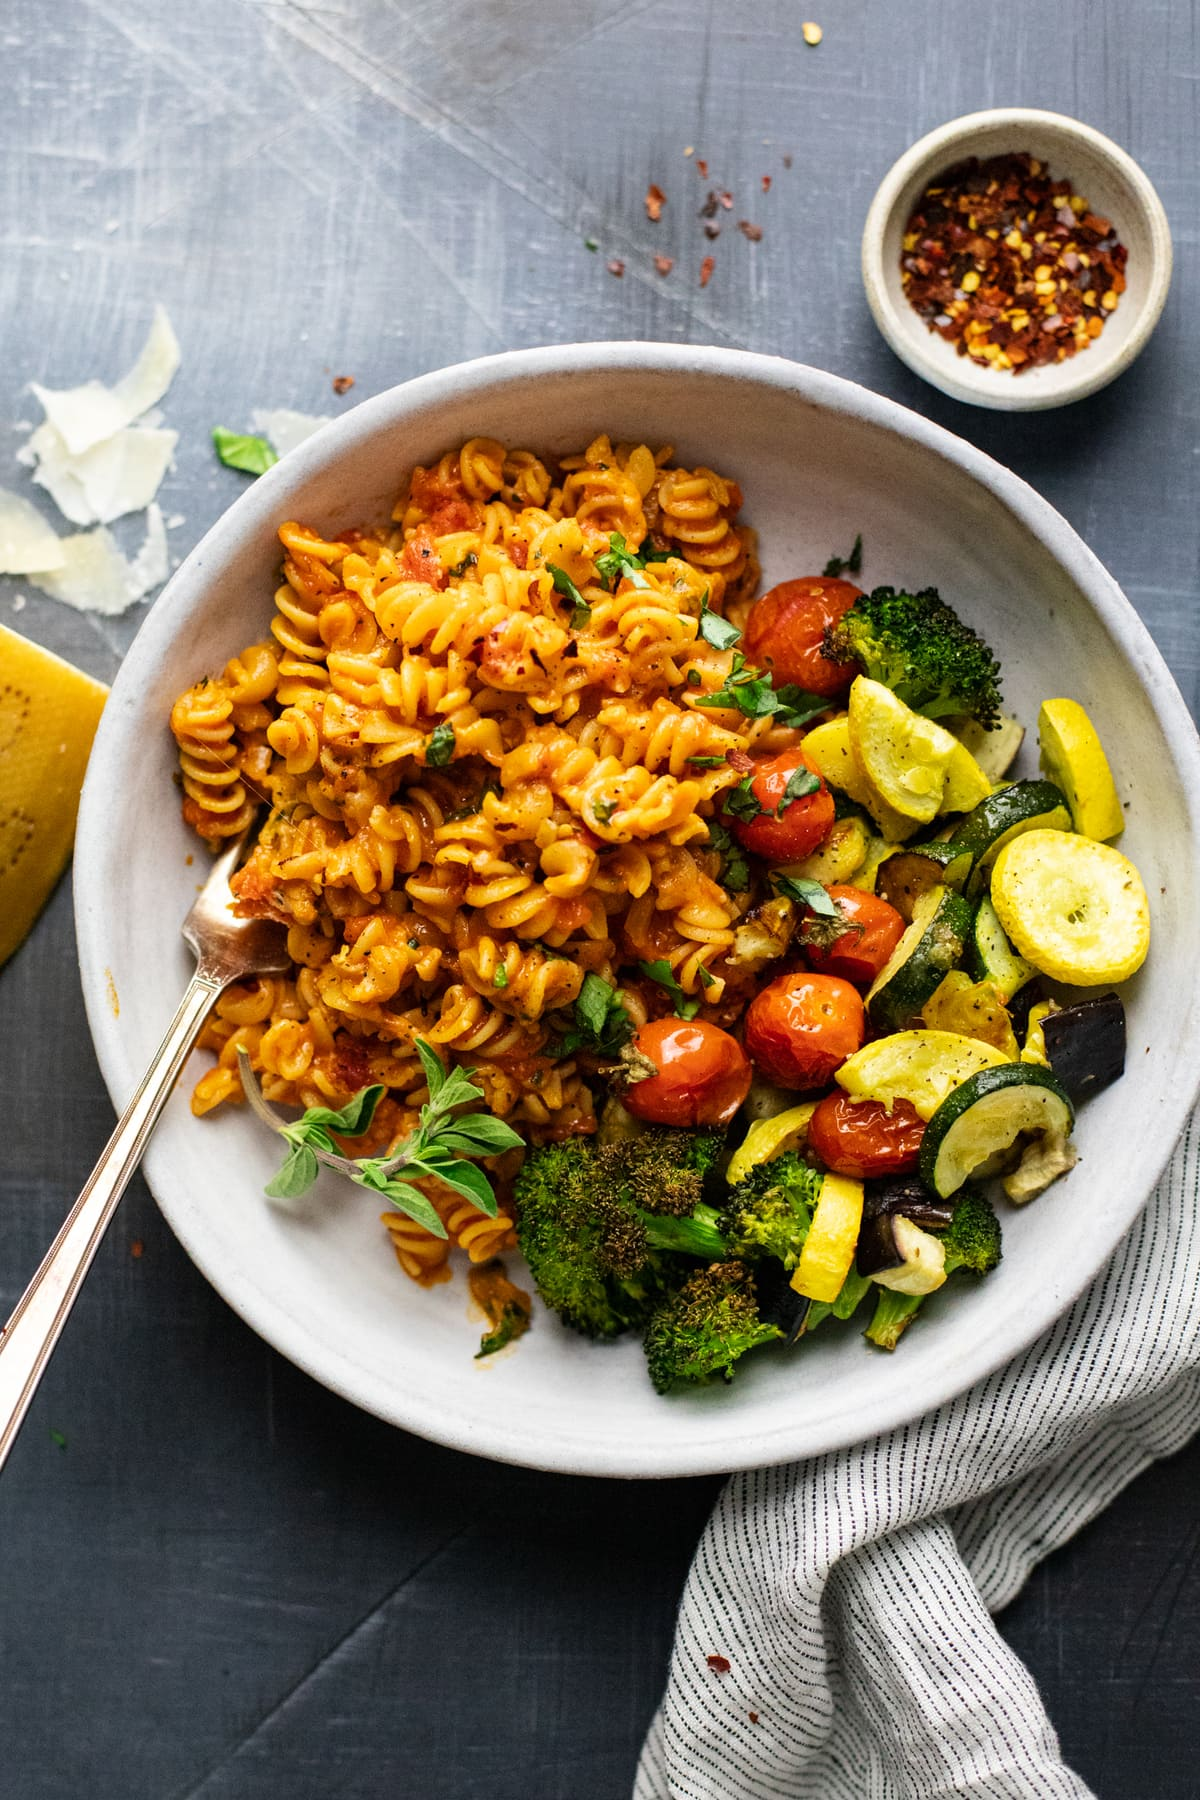 white bowl with rotini pasta noodles and roasted vegetables in it on gray background with shredded cheese and red pepper flakes arranged around it.